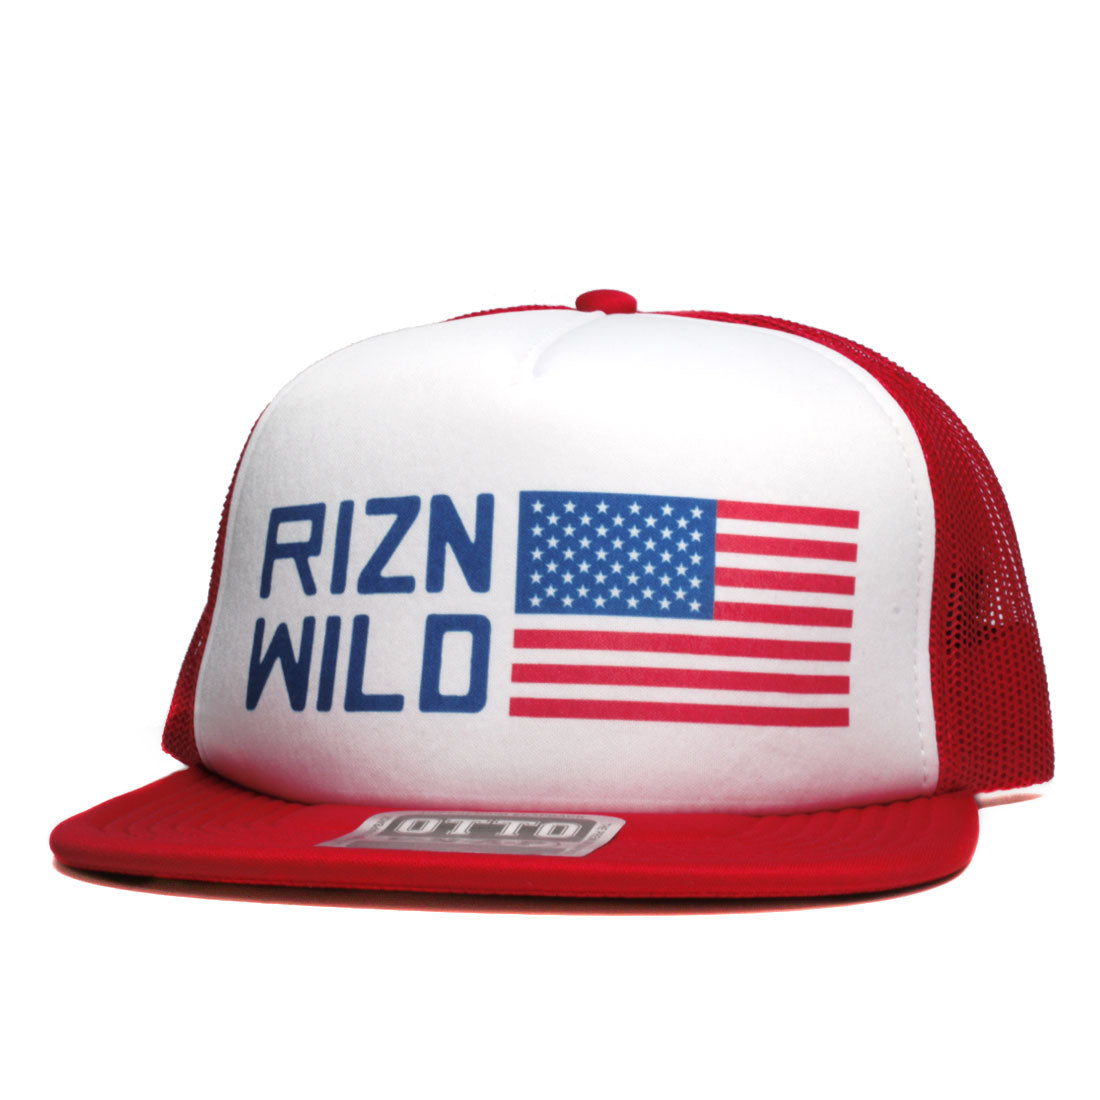 Patriot Flat Bill Otto Snap Trucker Hat in Red White